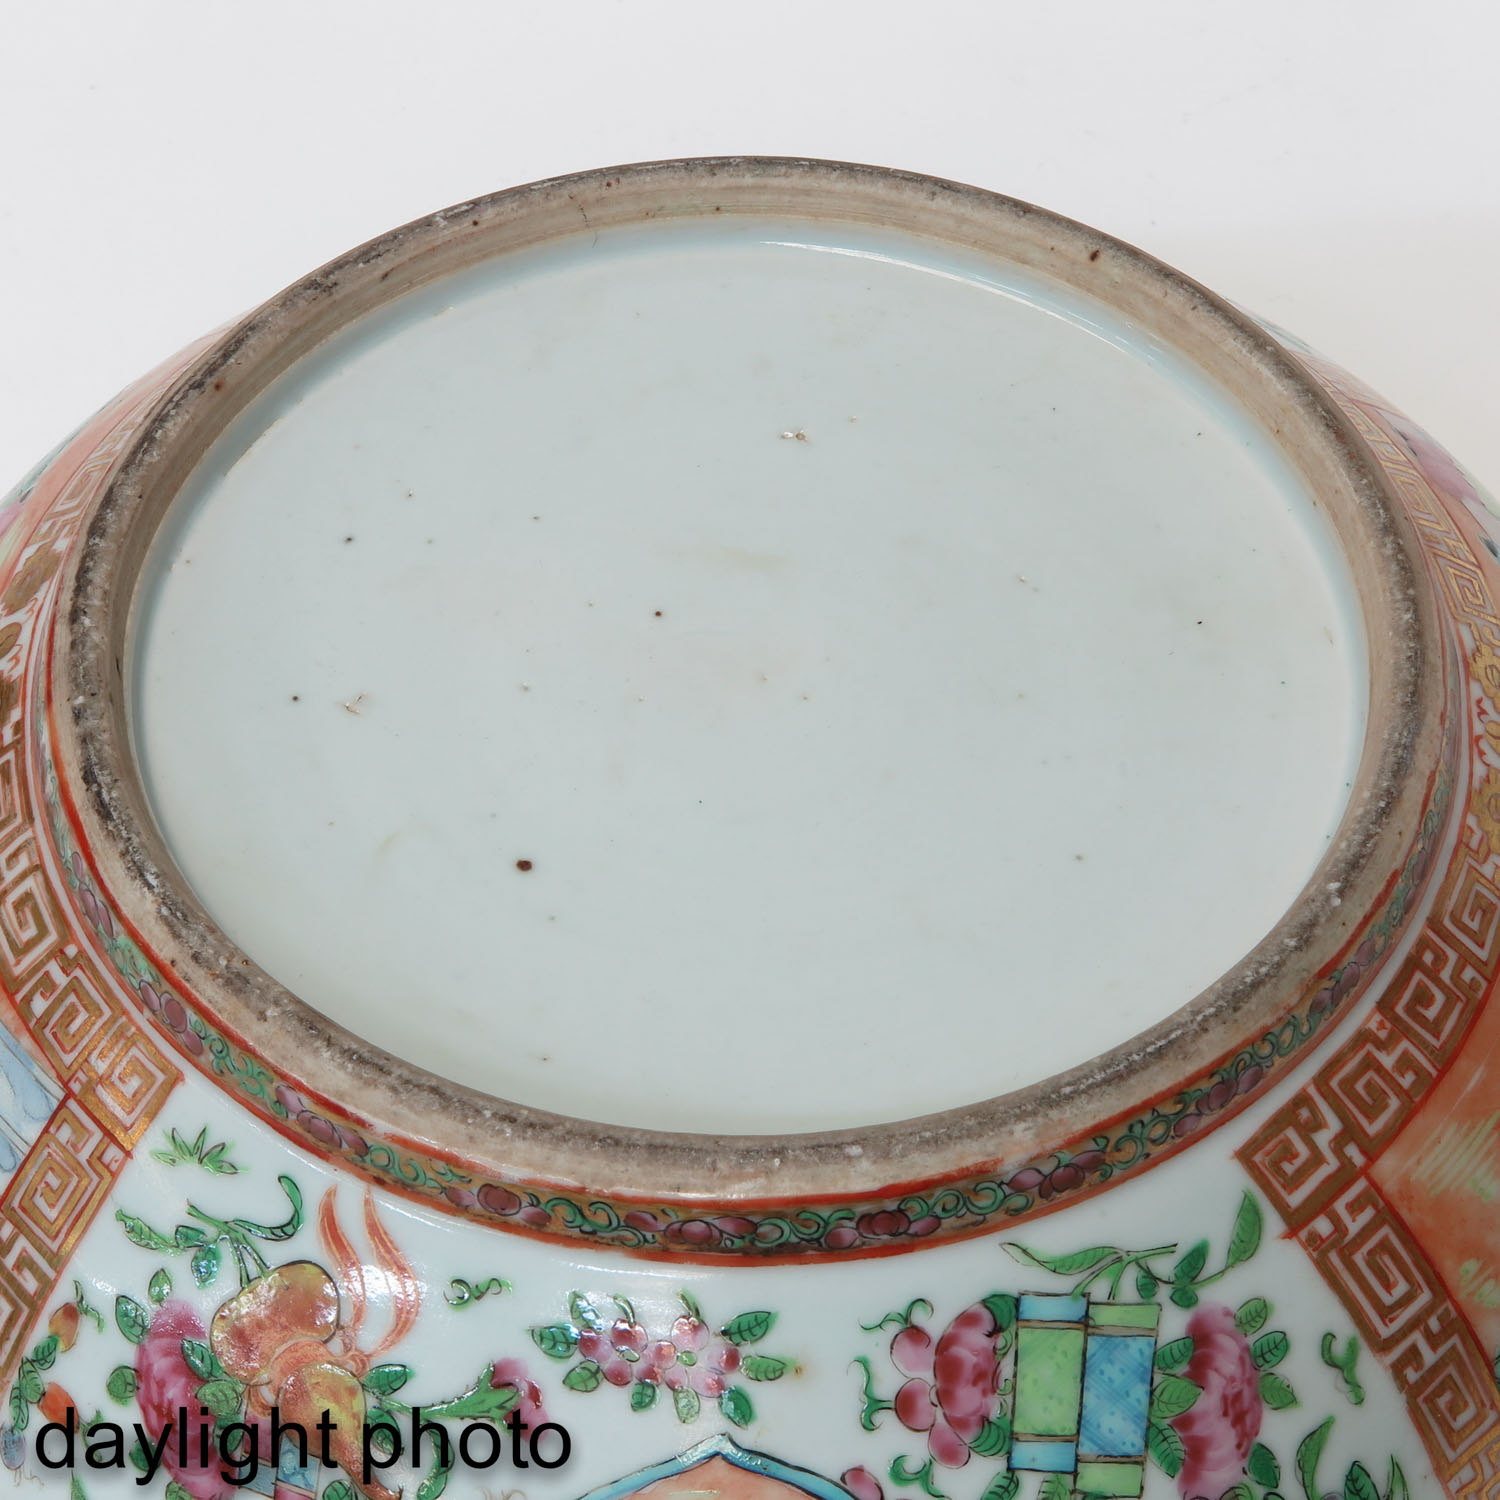 A Cantonese Bowl - Image 8 of 10